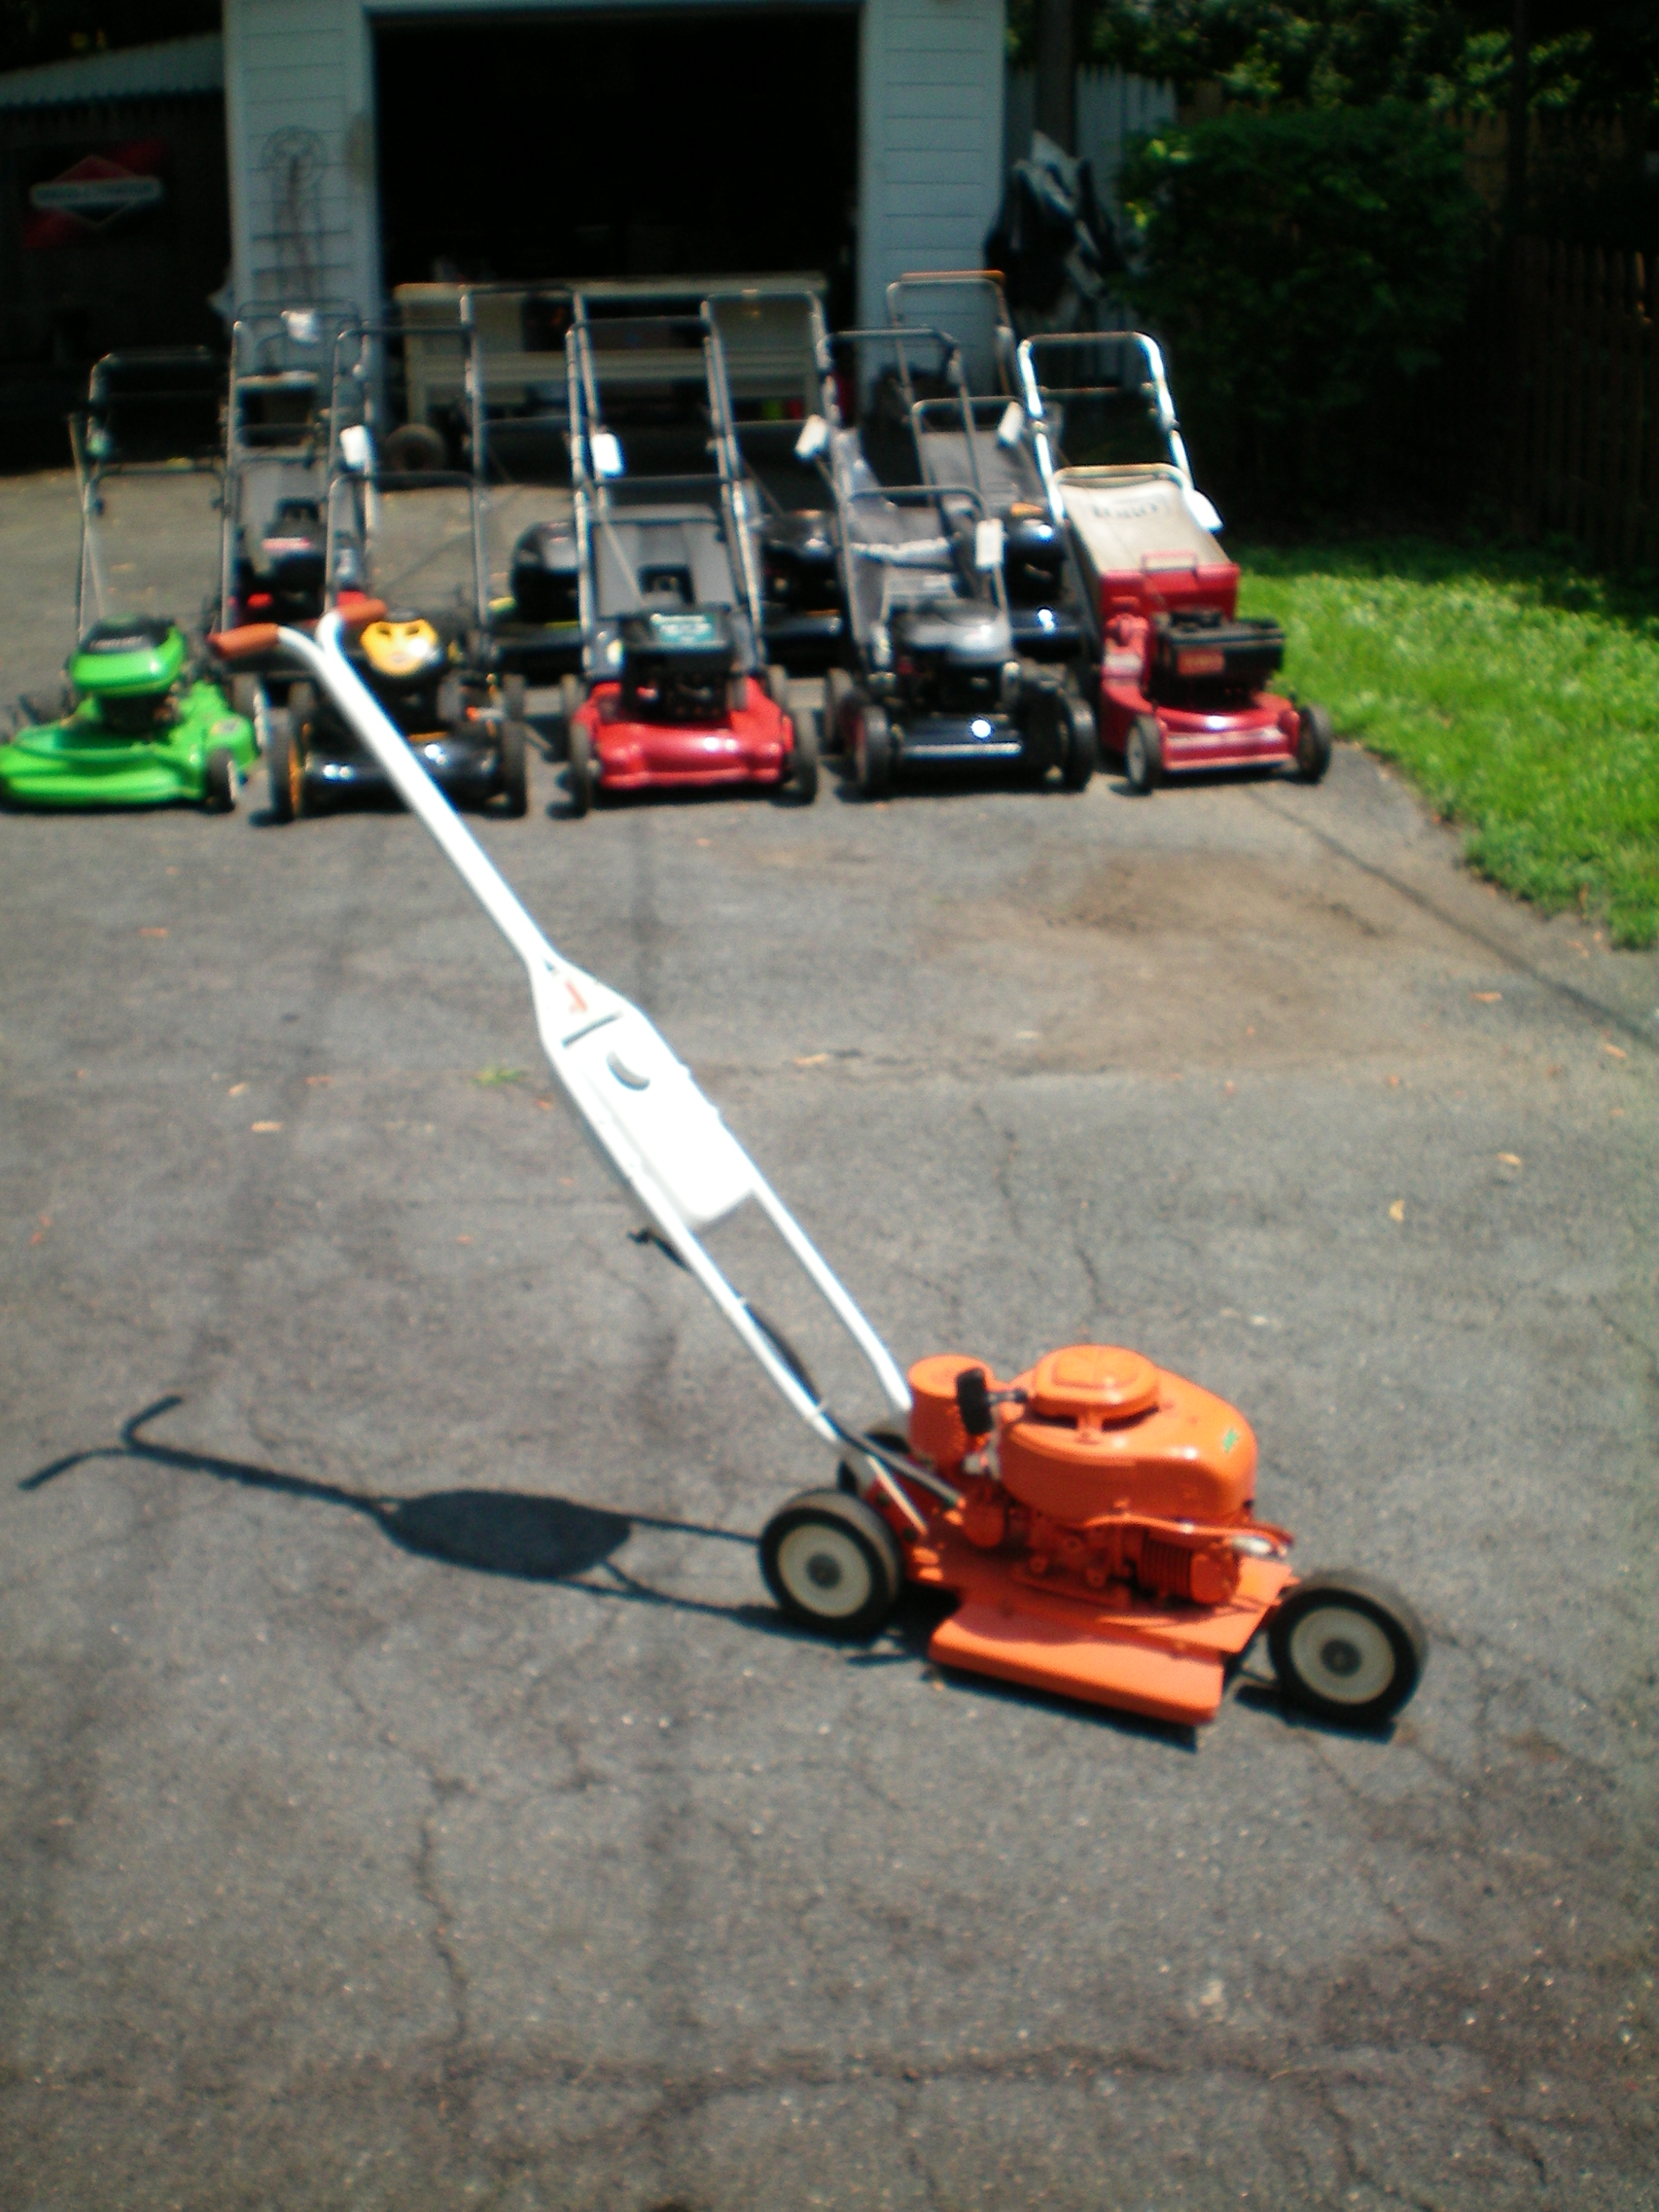 pictures of lawnmowers - Small Engine Repair Albany Ny